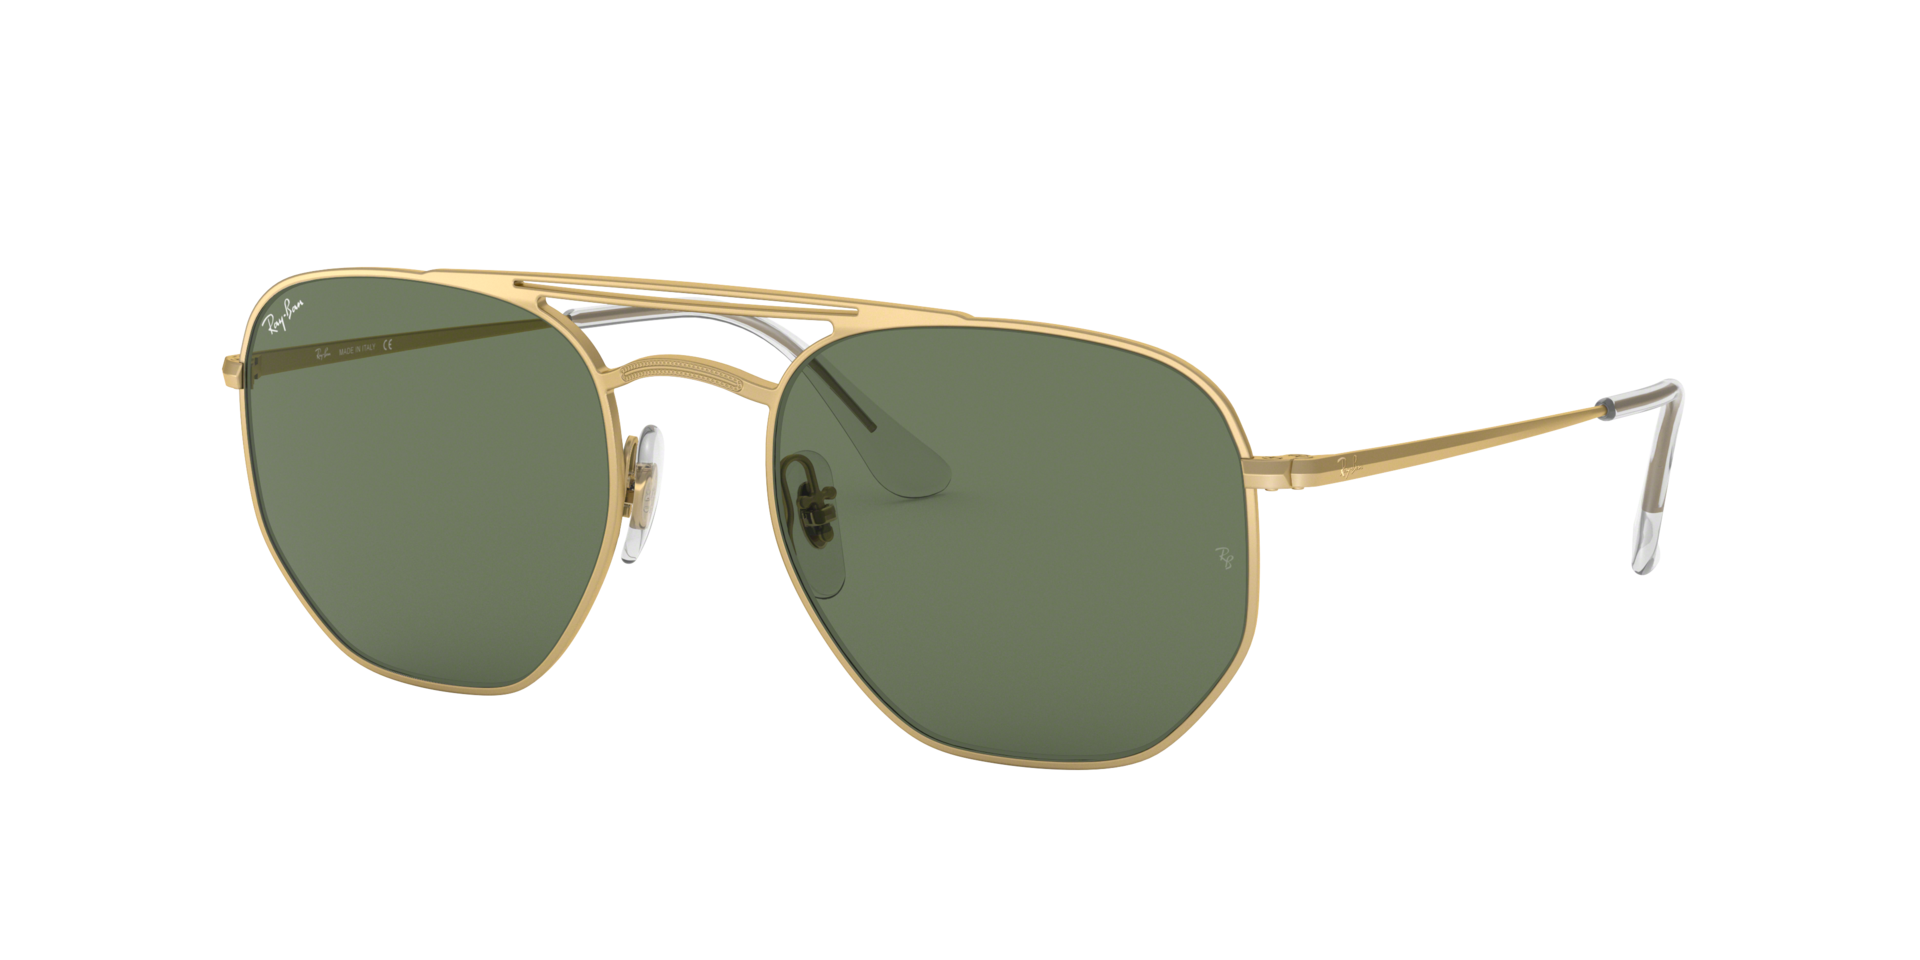 611530d058 Ray-Ban RB3609 - Vision Works Optometrists